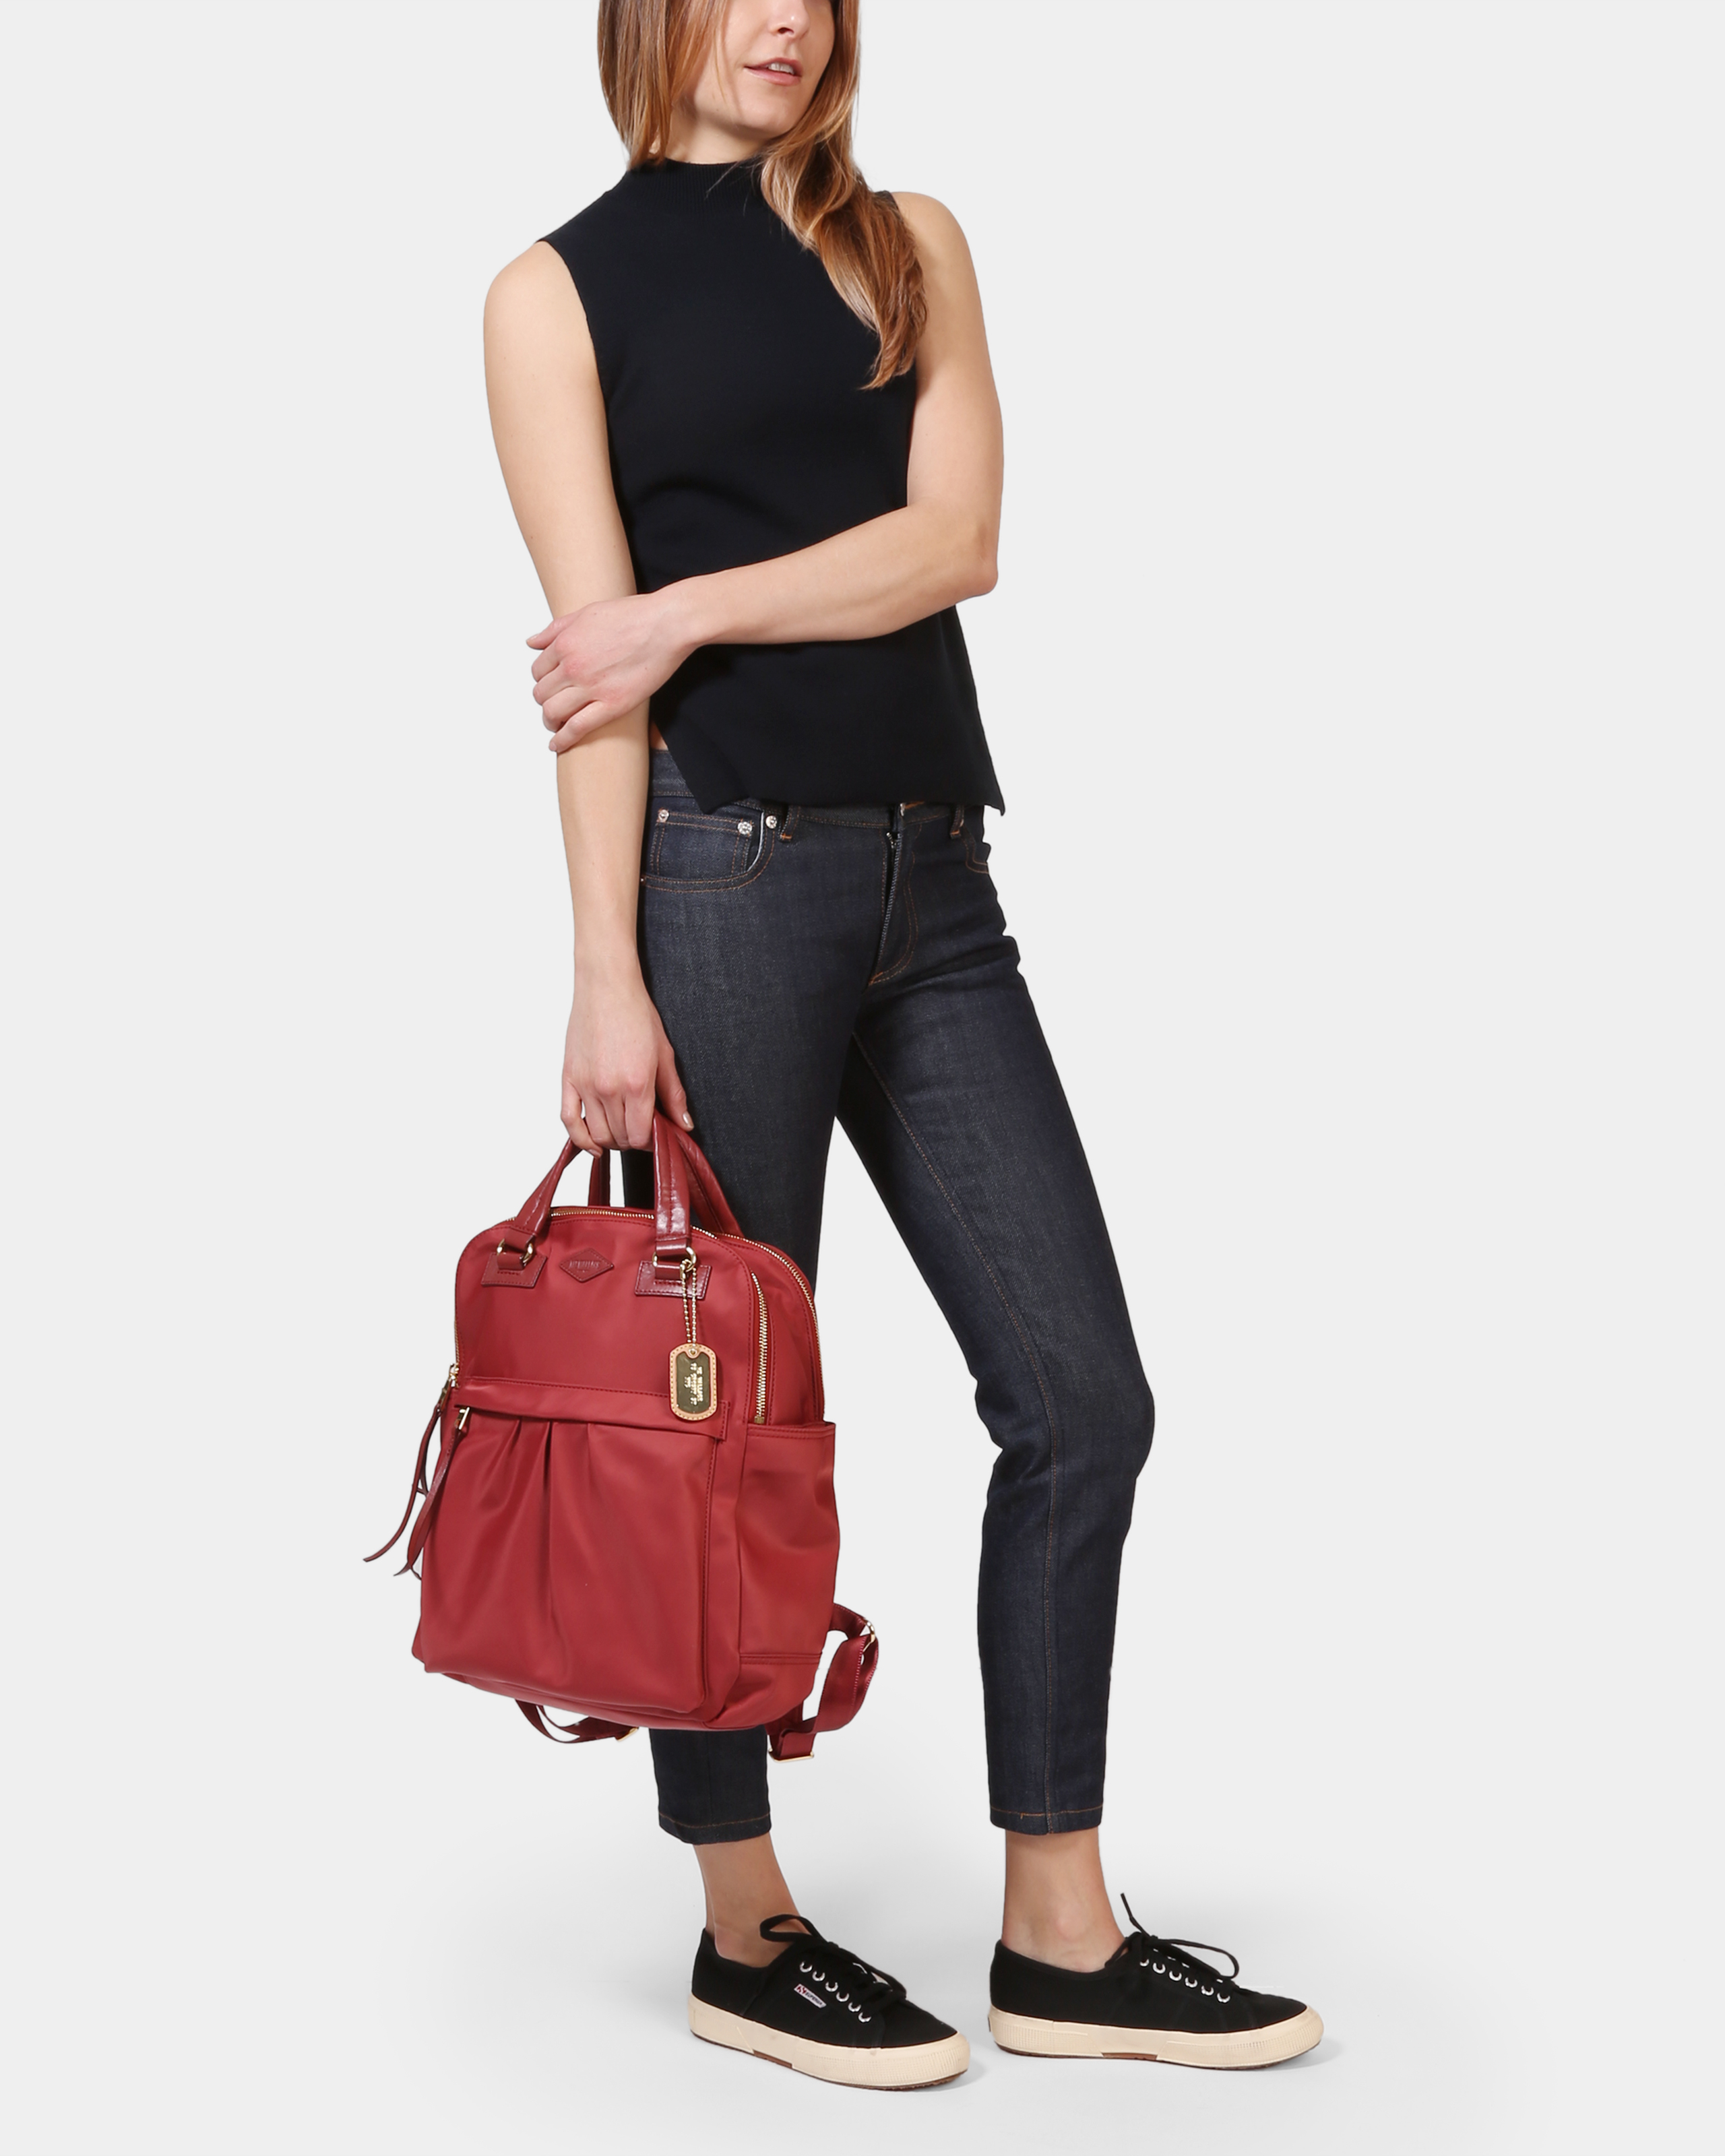 Dahlia Bedford Jordan Backpack (4531380) in color Dahlia